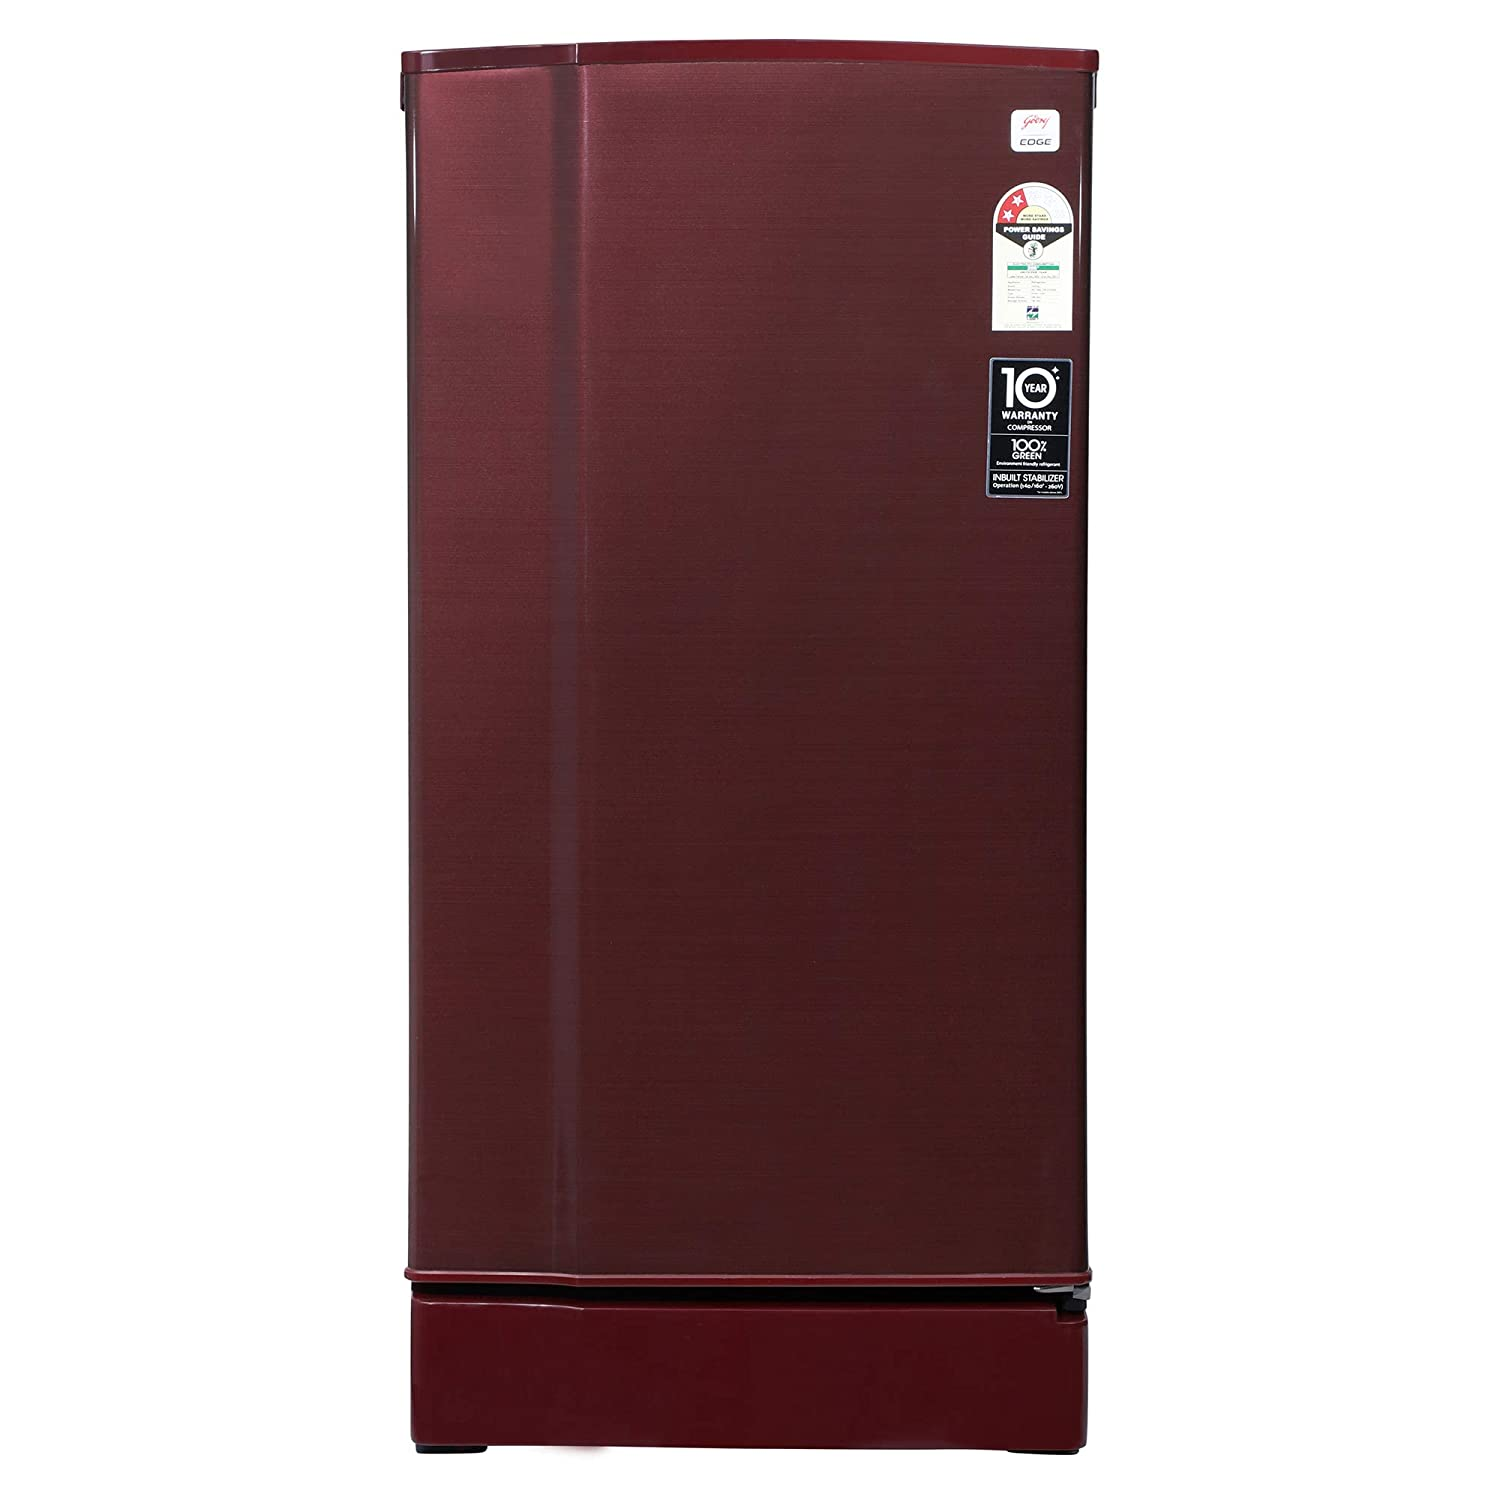 Godrej 190 L 2 Star Direct-Cool Single Door Refrigerator (RD 1902 EW 23 STL WN, Steel Wine)